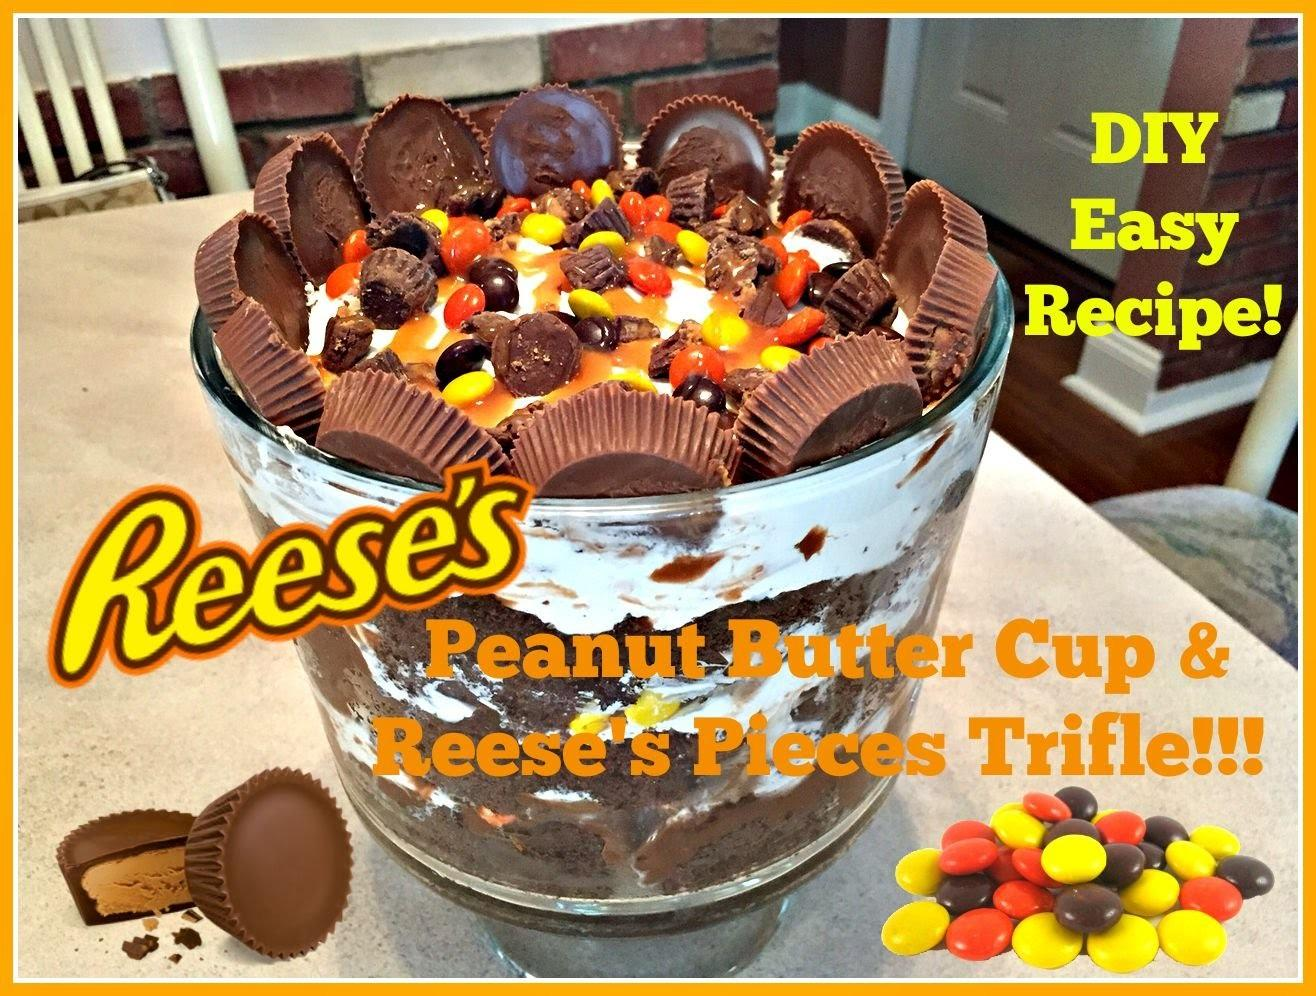 Diy Peanut Butter Cup Reese Pieces Trifle Easy Recipe